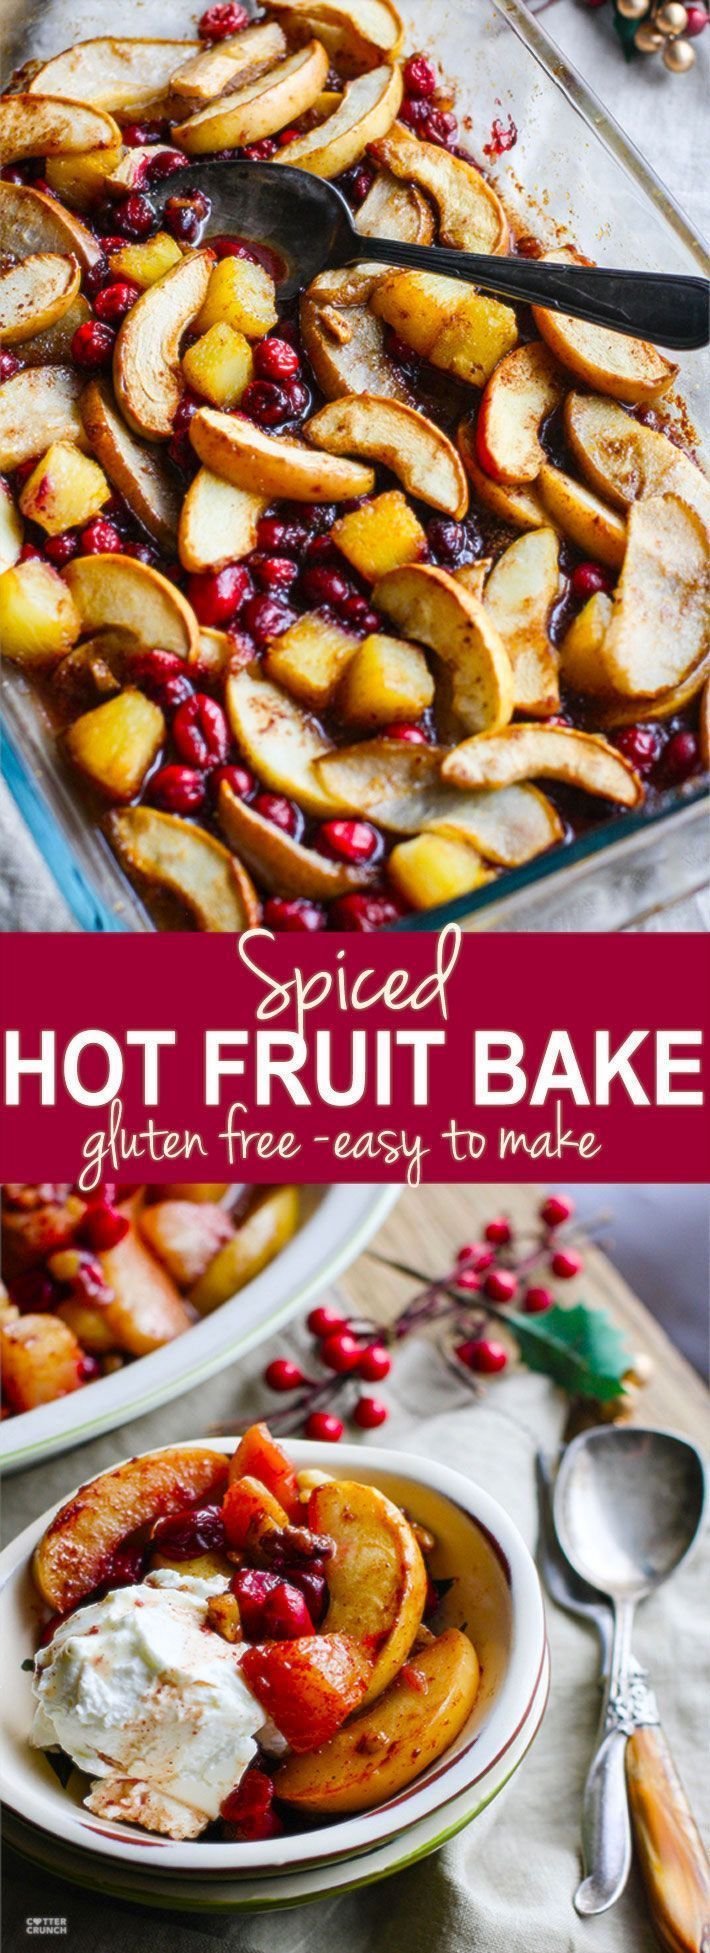 Easy Spiced Hot Fruit Bake! A delicious and healthy holiday breakfast bake! This gluten free spiced hot fruit bake also makes for a great topping for waffles, pancakes, oatmeal, or simply by itself! A nutritious dish to add to your Christmas or New Year's Brunch! Vegan friendly. www.cottercrunch.com